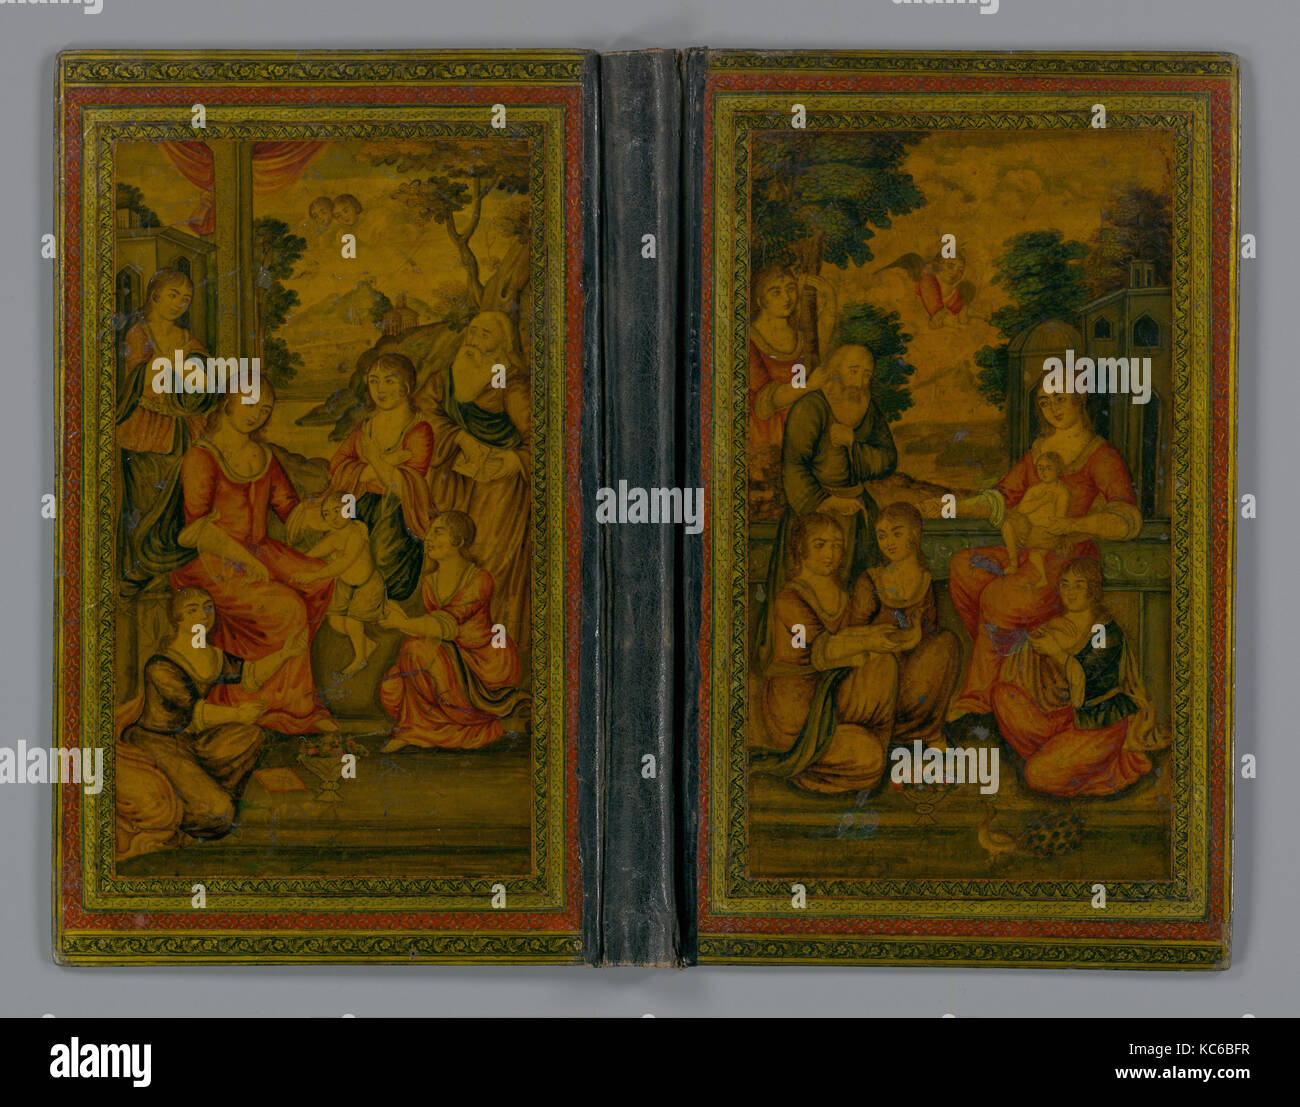 Bookcover with Christian Themes, mid-19th century, Attributed to Iran, Pasteboard; painted and lacquered, H. 11 - Stock Image